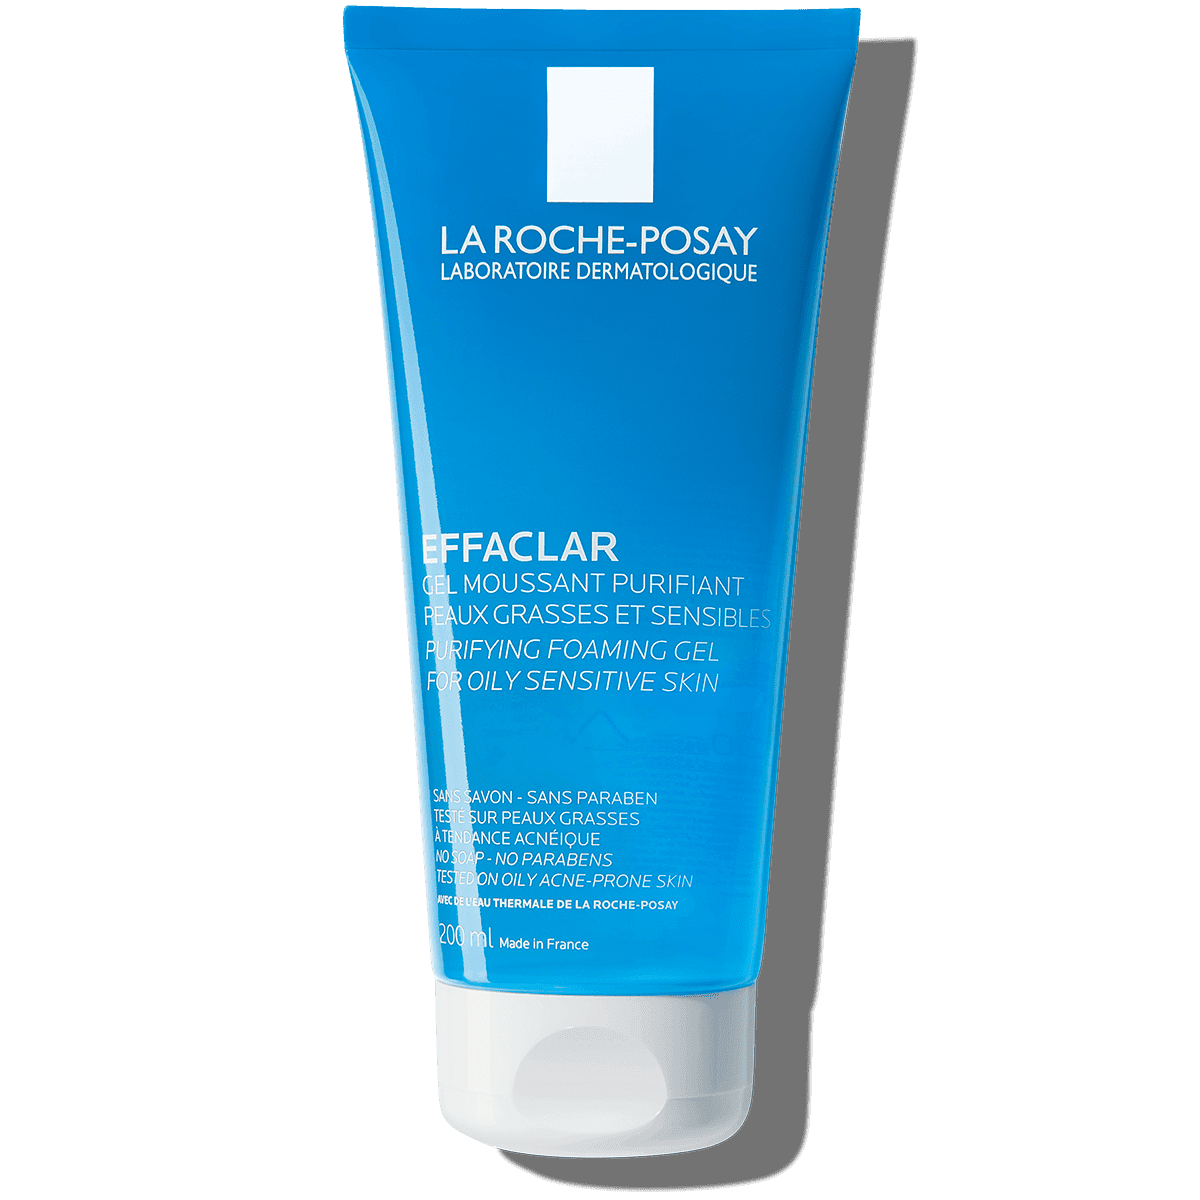 La Roche Posay Face Cleanser Effaclar Cleansing Foaming Gel 200ml 3337